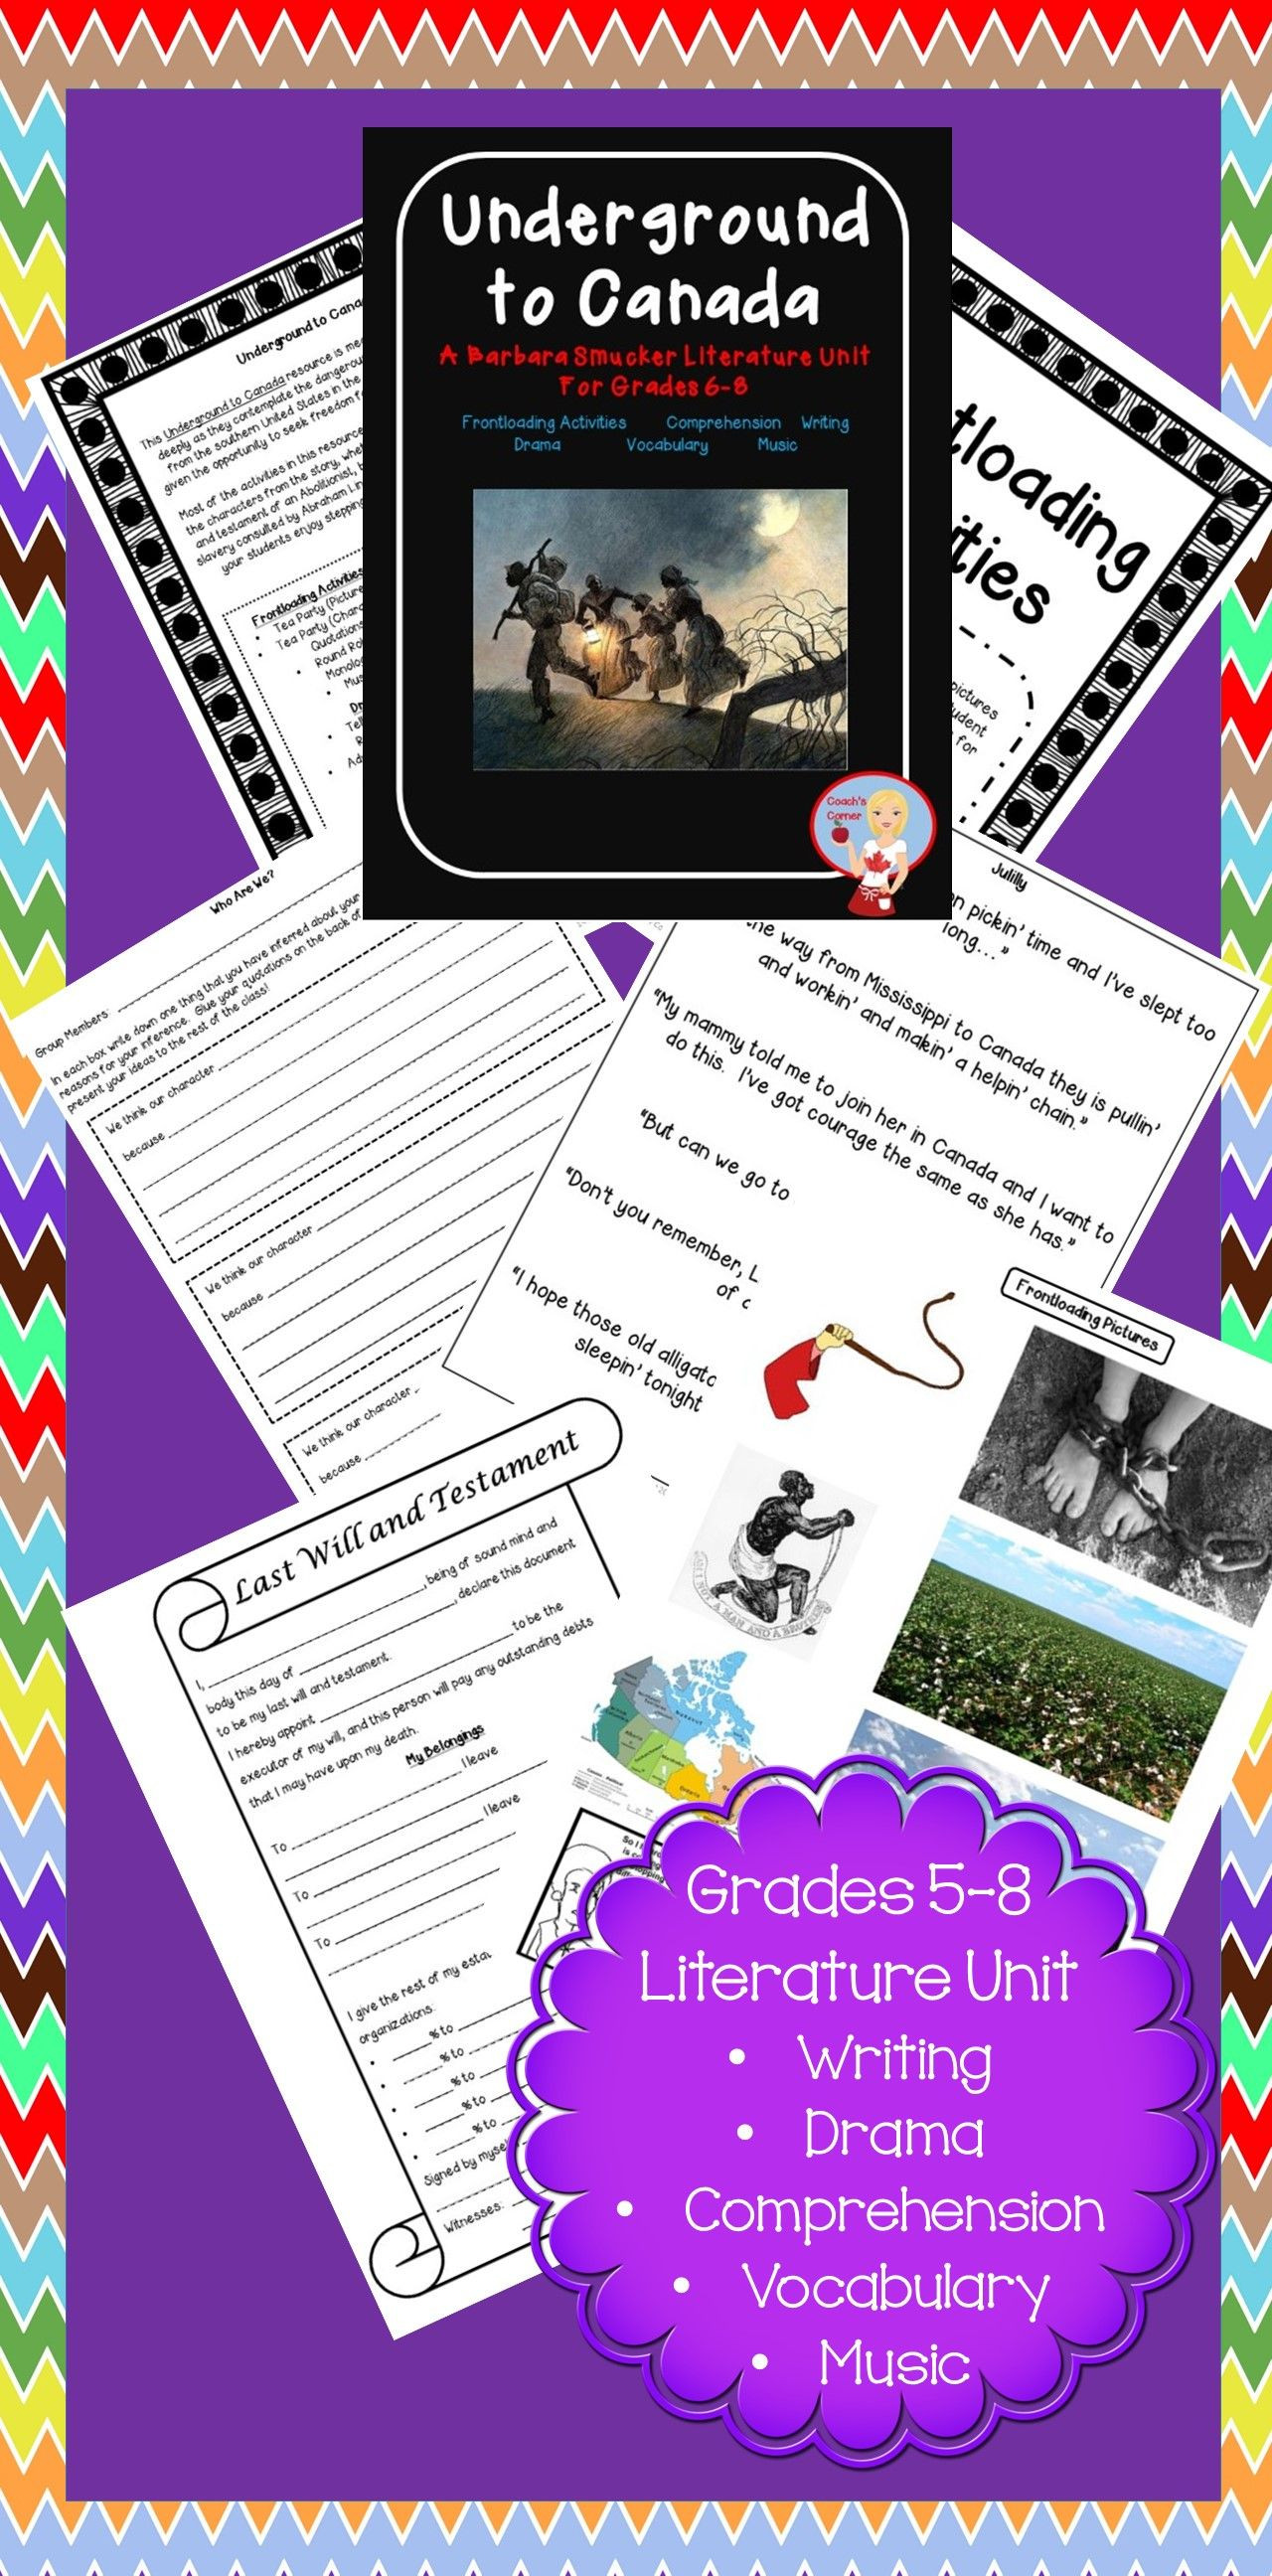 57 page Underground to Canada unit based on the book by Barbara Smucker Includes frontloading writing prehension drama music vocabulary activities